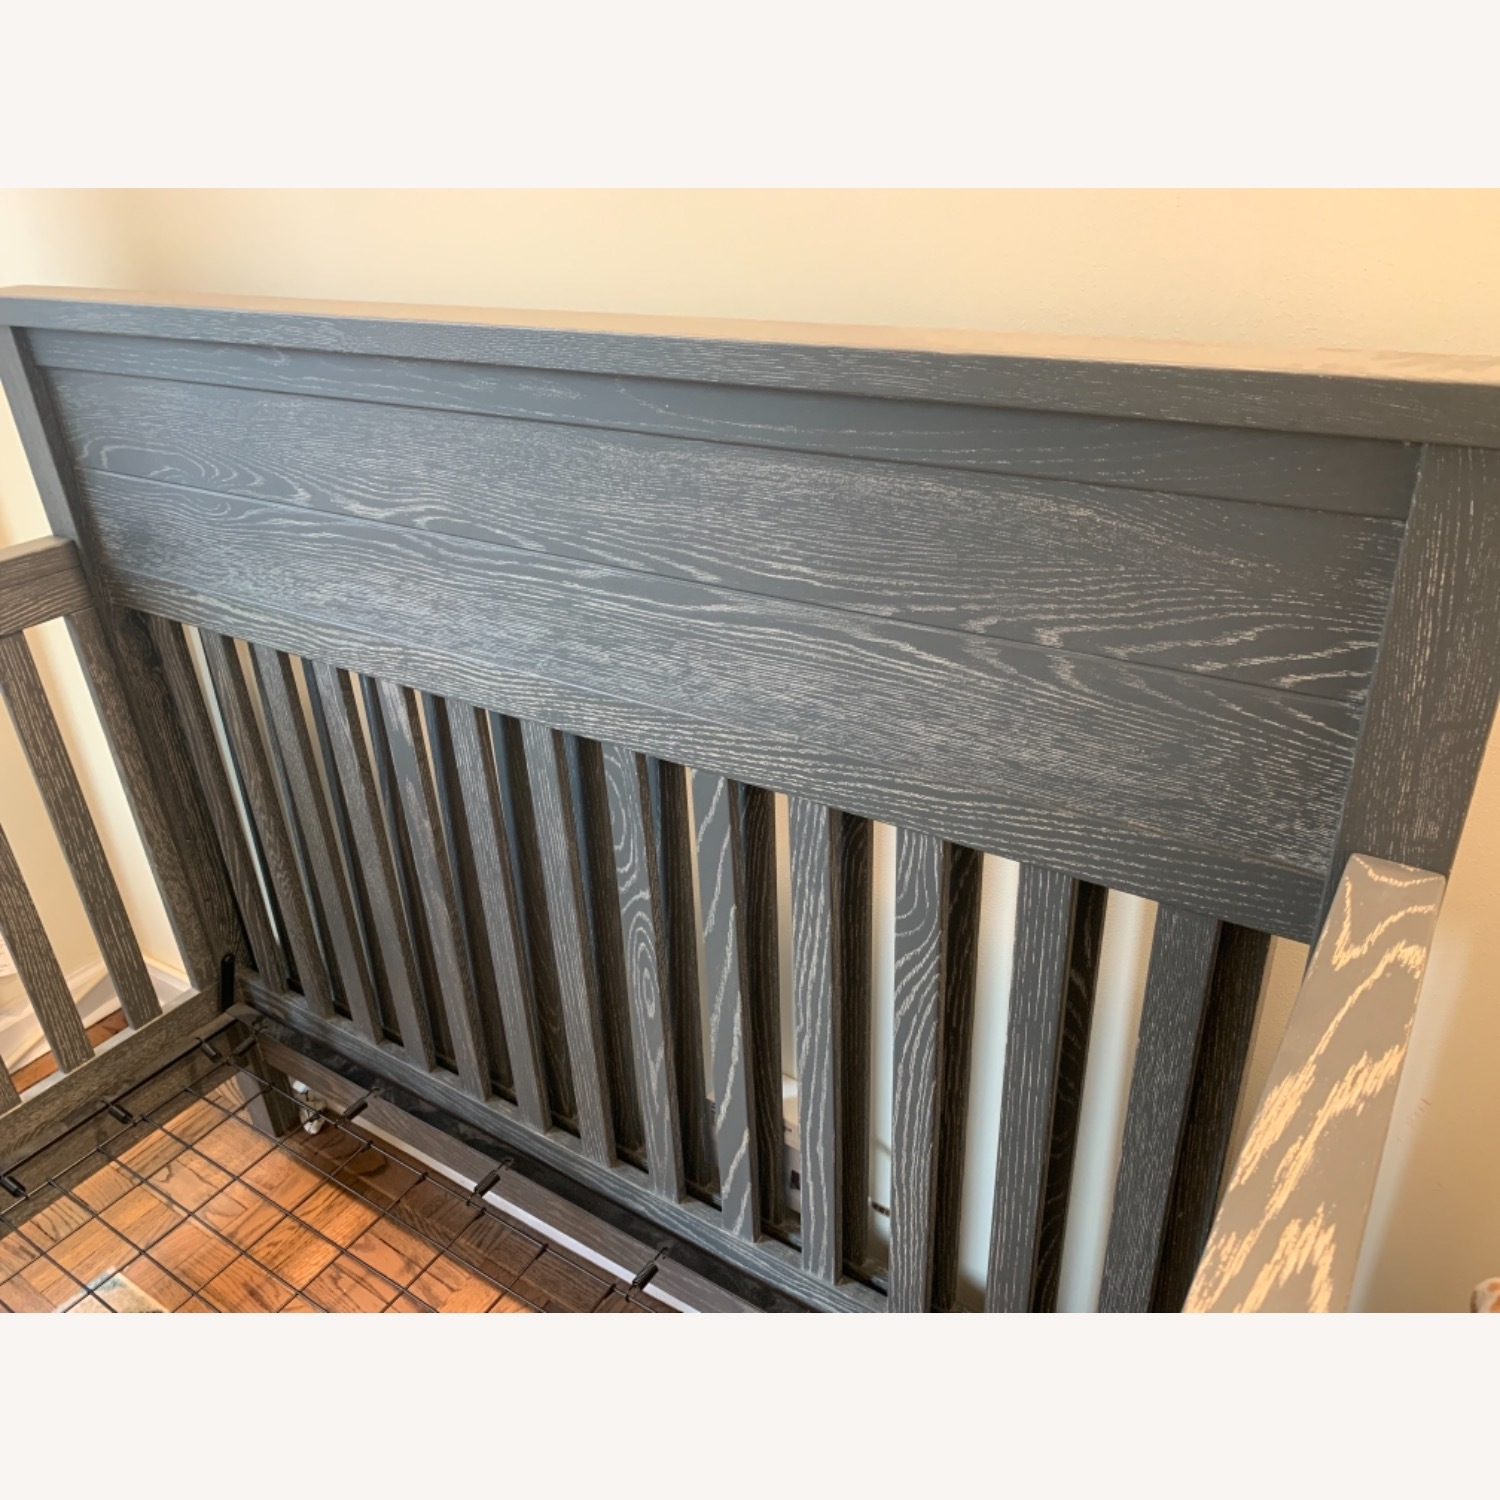 Pottery Barn Charlie Crib, Toddler Bed, Full Bed - image-3